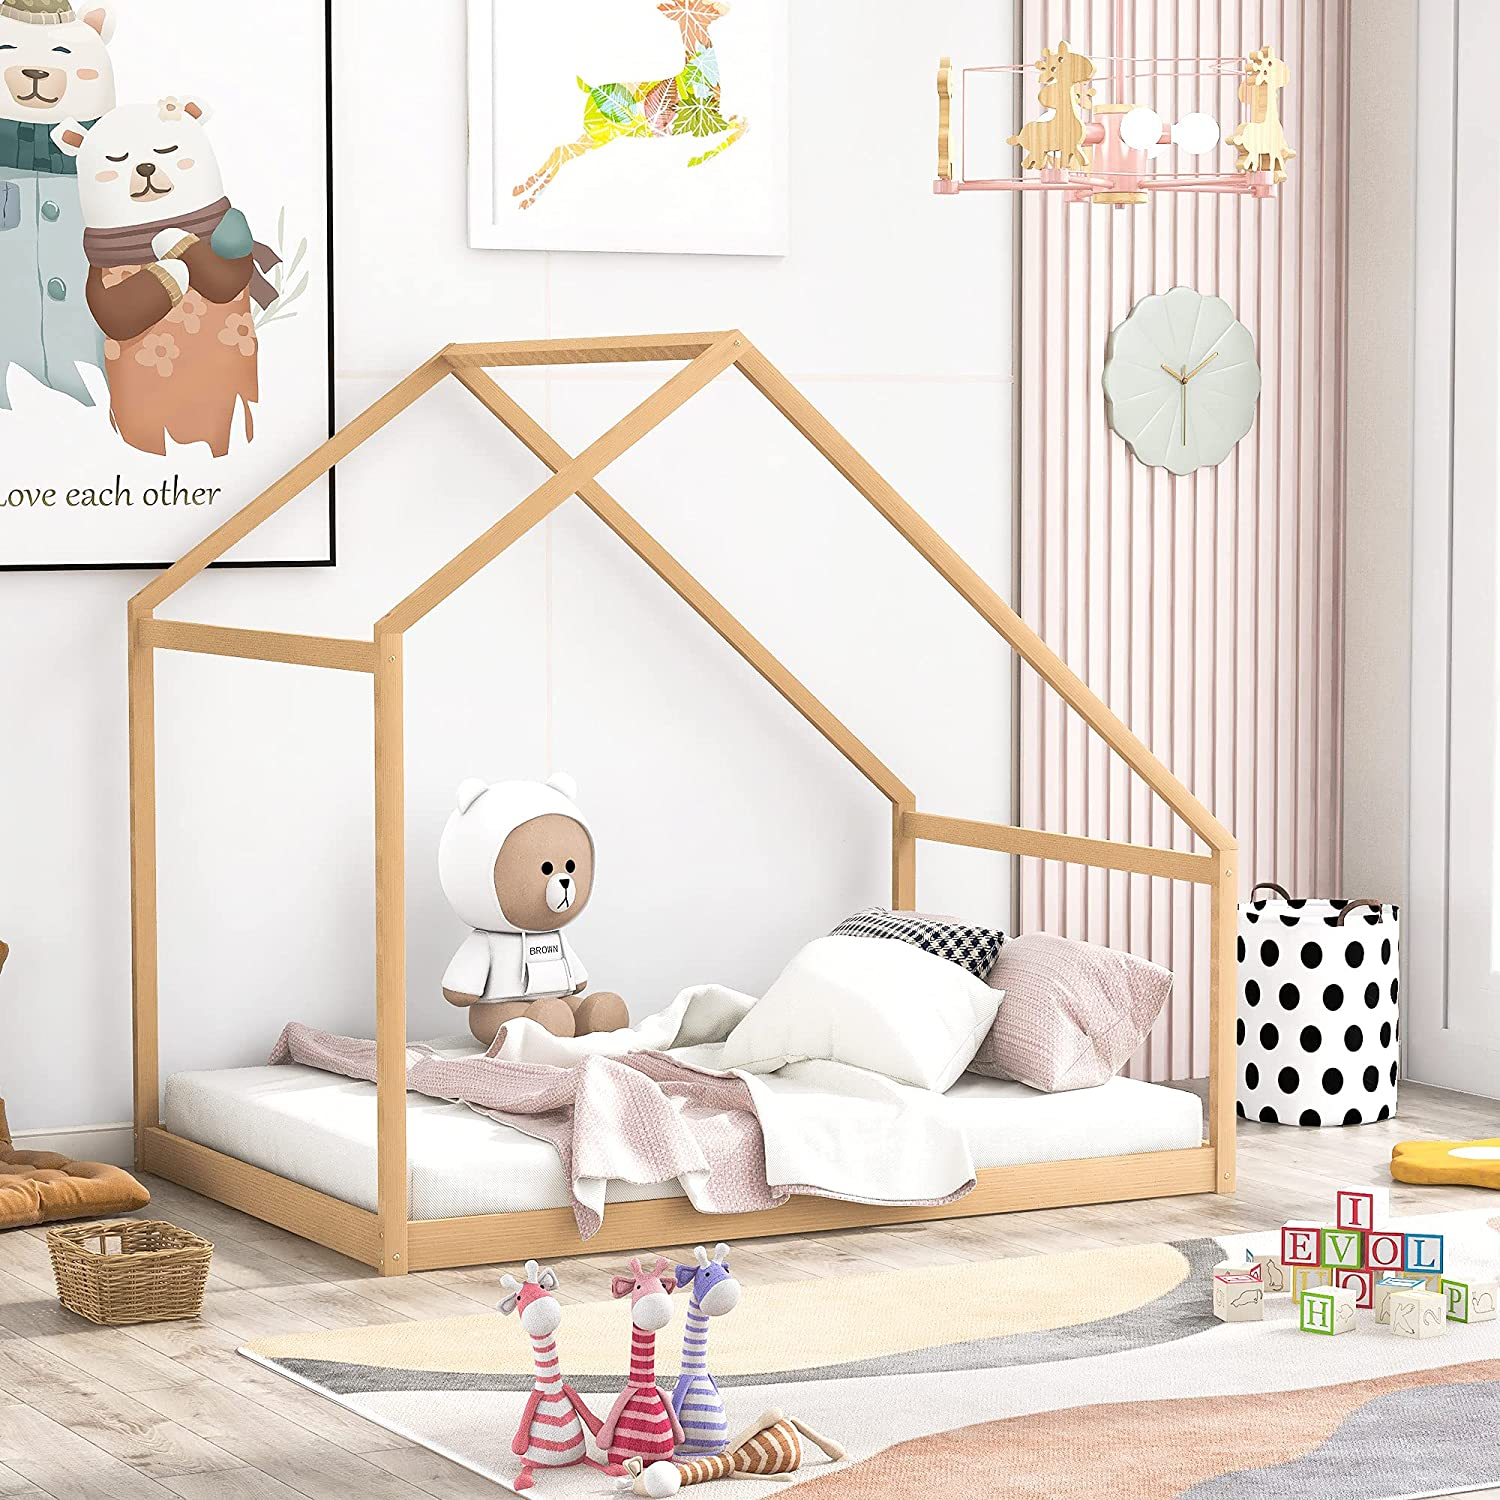 House Bed Frames Attention brand with Roof for Kids Teens or Wood Girls Boys Max 89% OFF